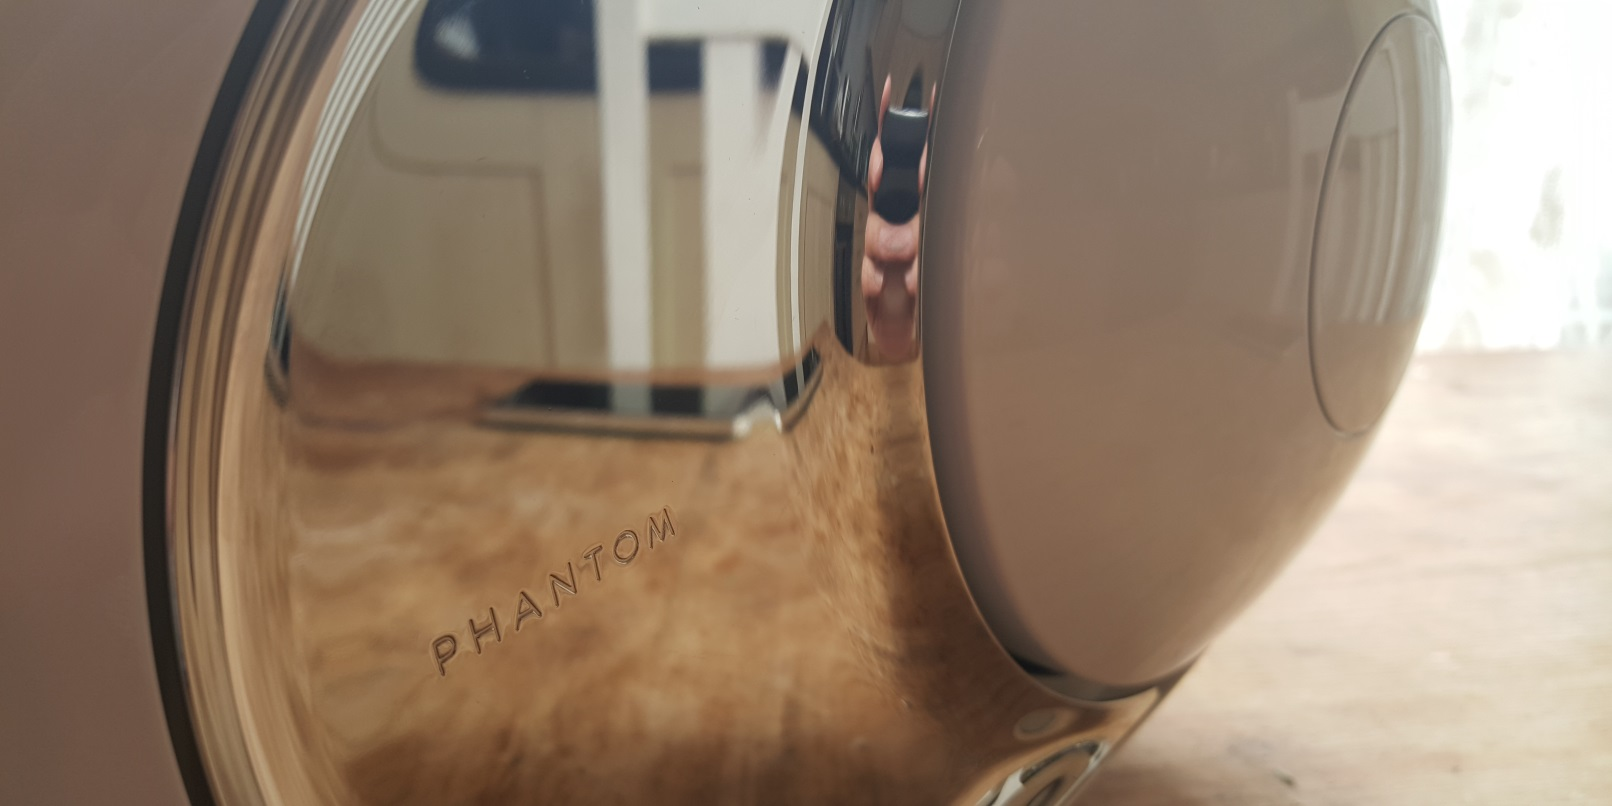 Devialet Phantom review: This incredible $2,000 'Bluetooth speaker' is going to annoy your neighbors